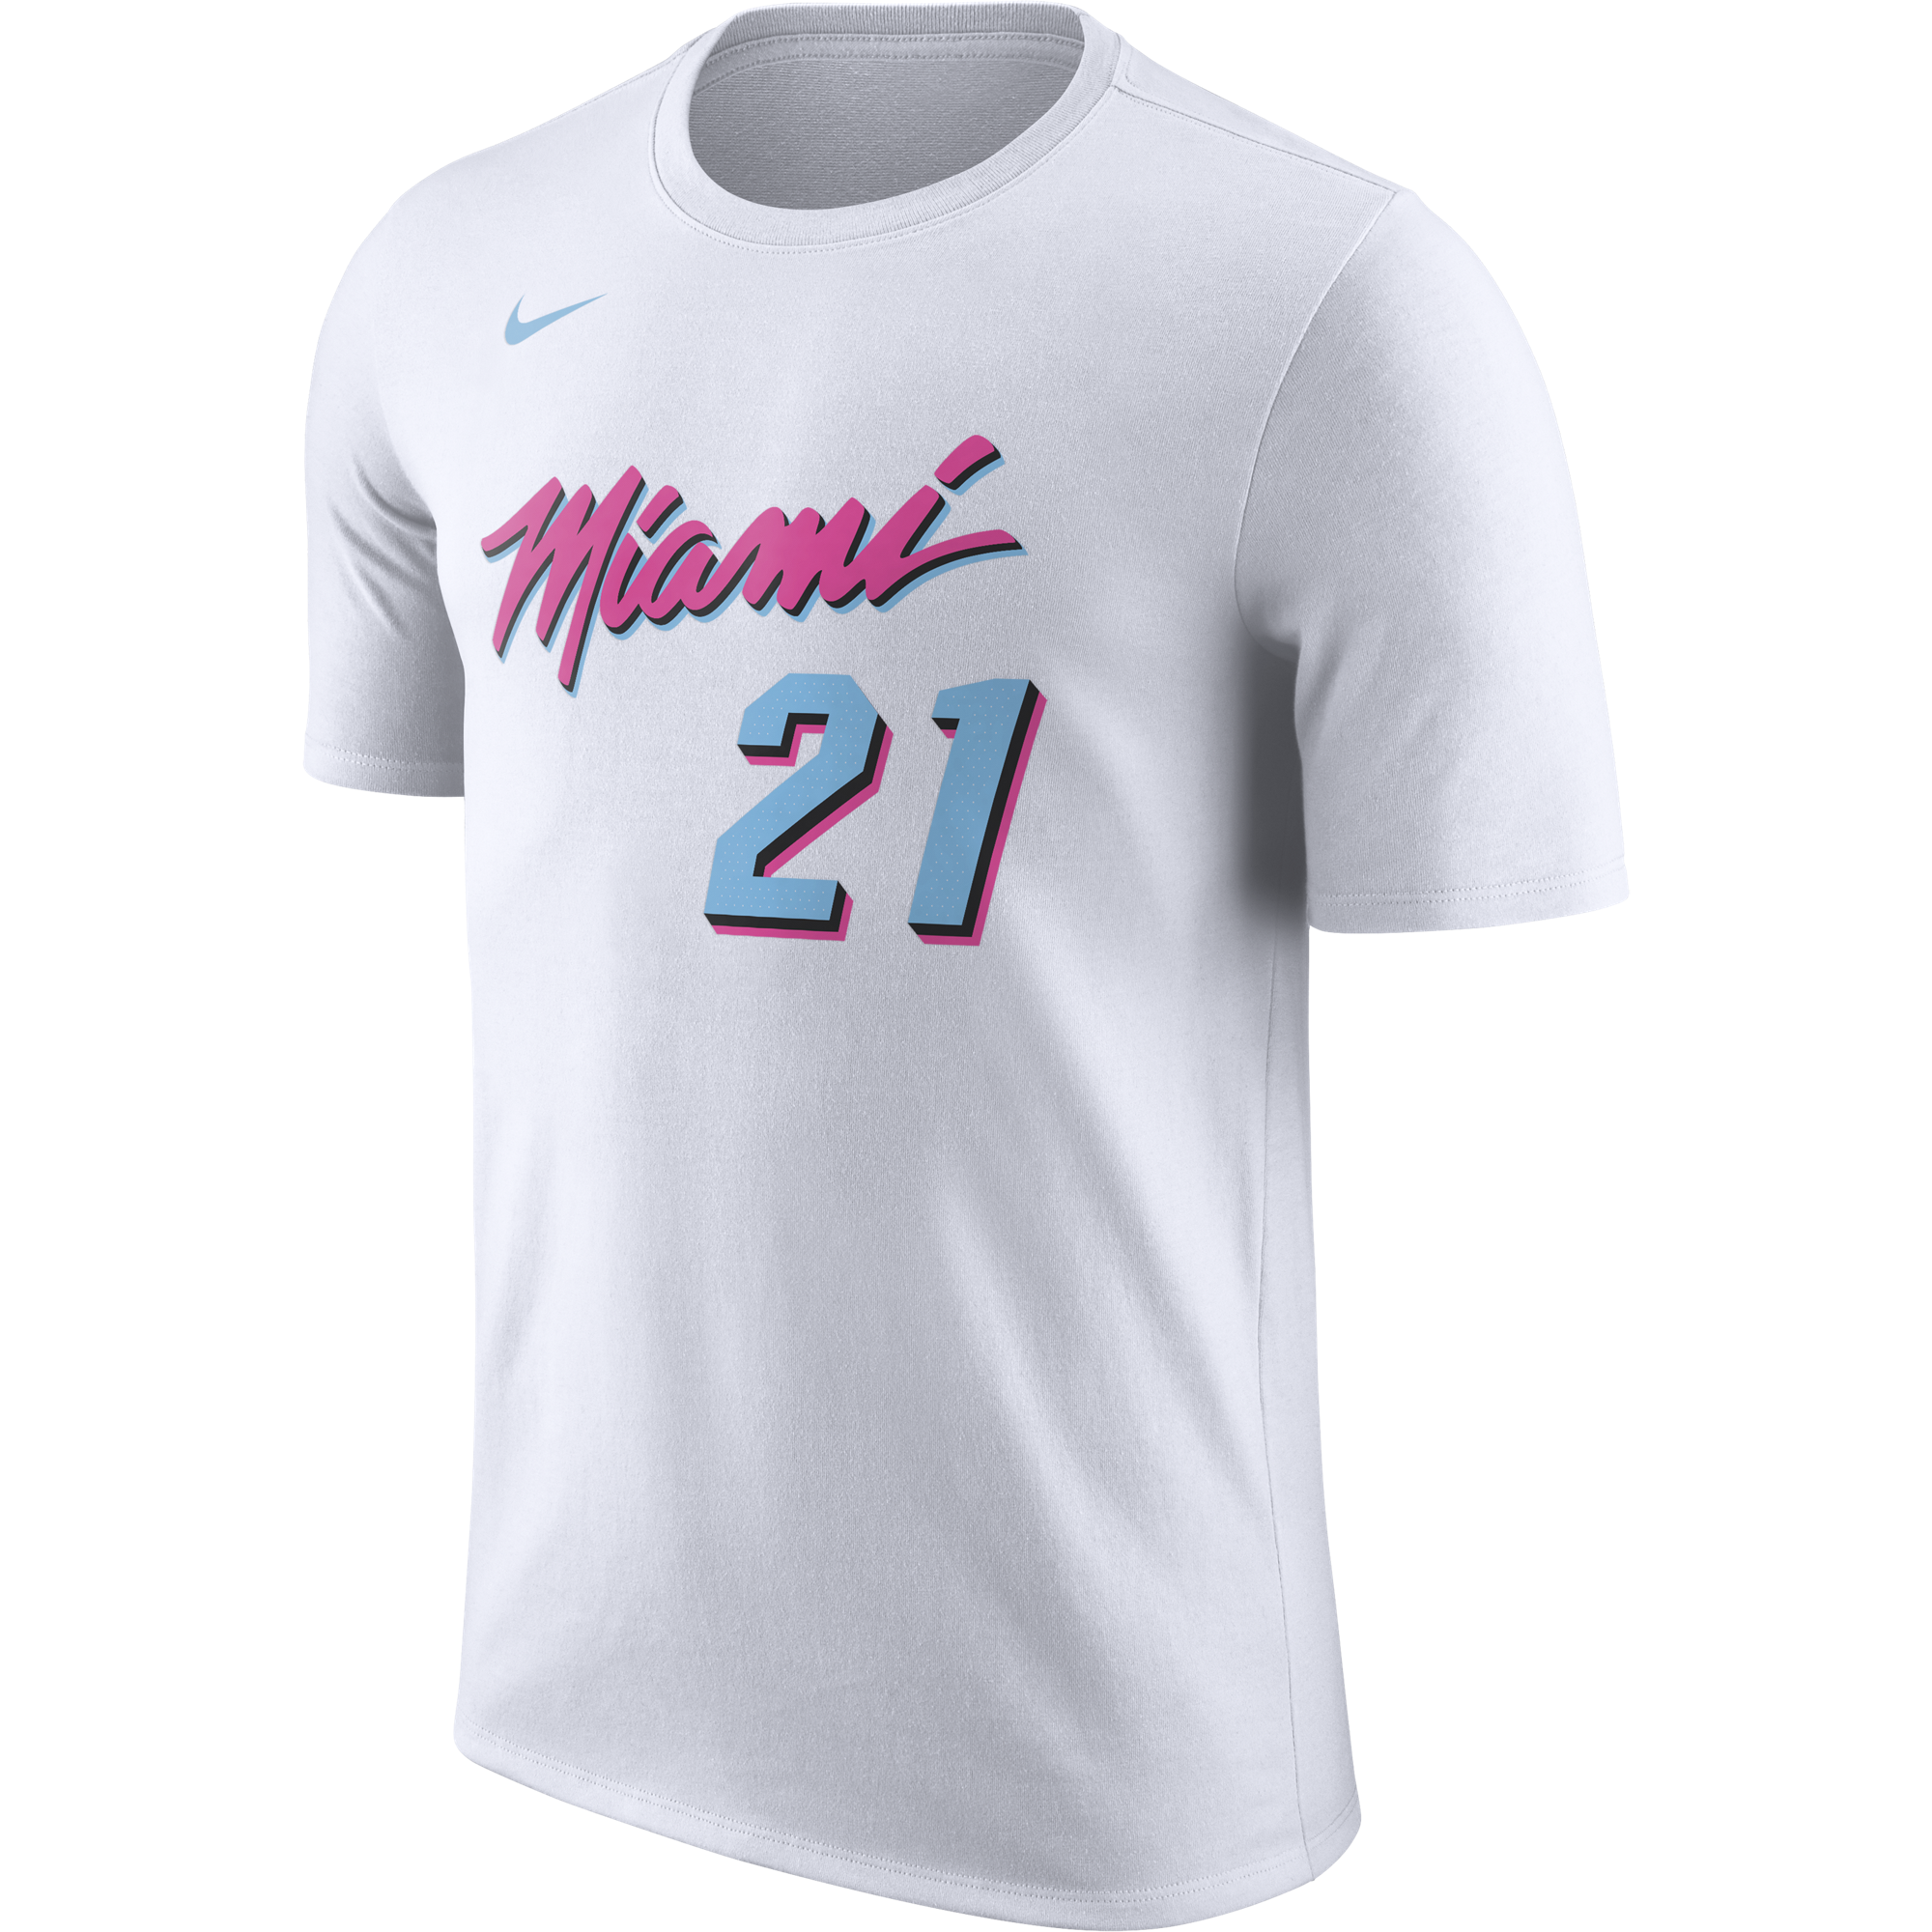 b2f329dca Hassan Whiteside Nike Miami HEAT Vice Uniform City Edition Name   Number Tee  - featured image